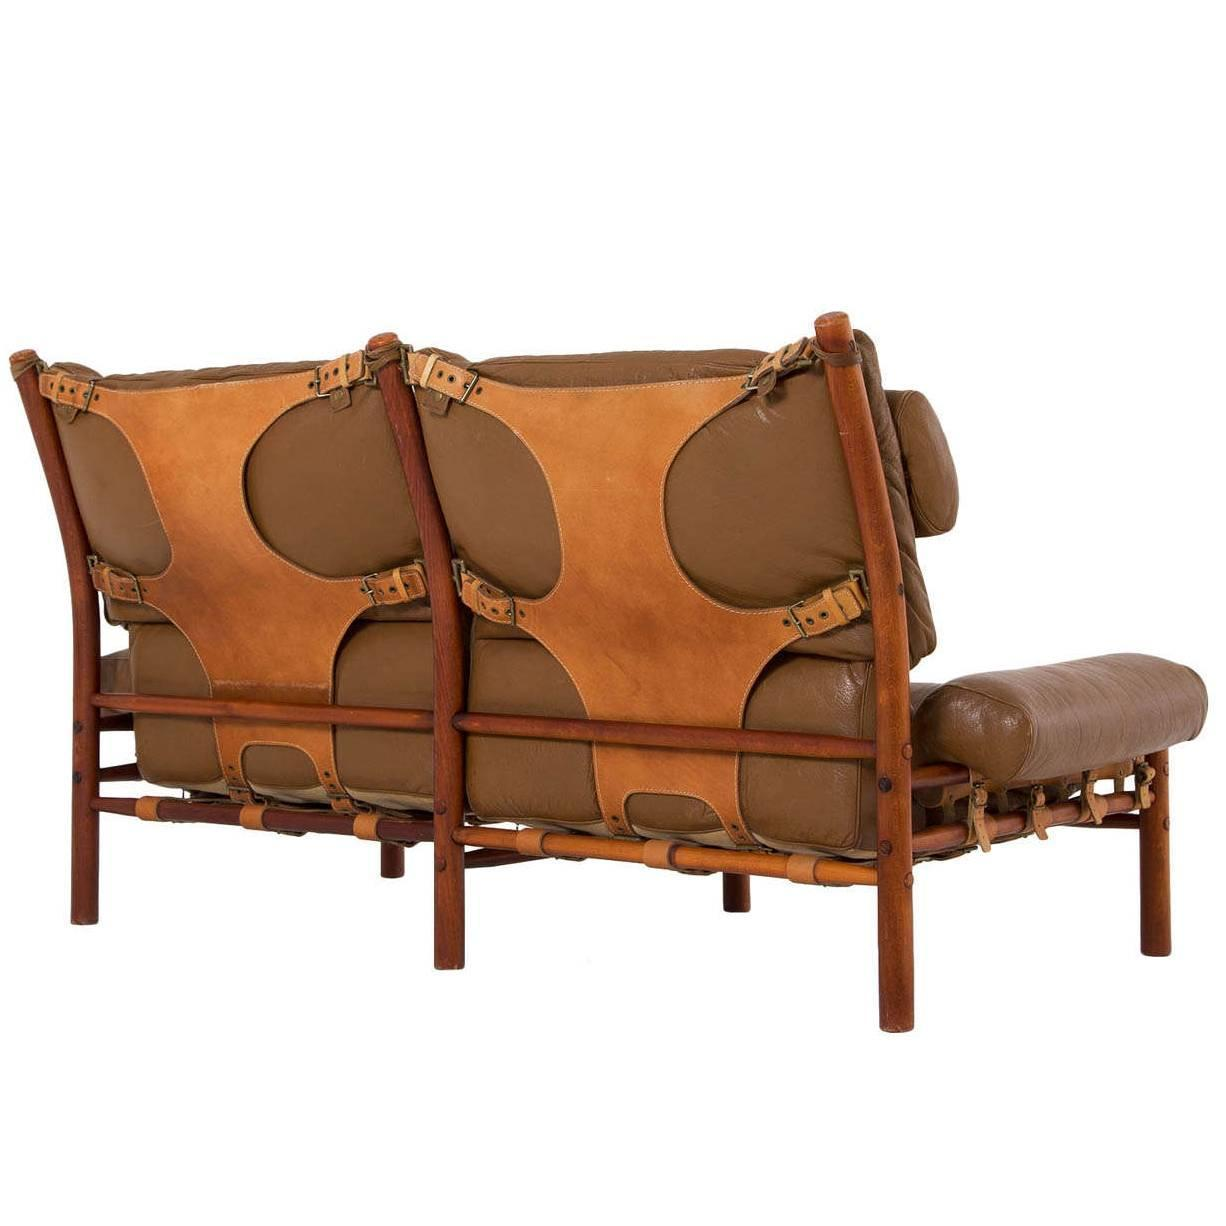 Of four chairs in oak and patinated cognac leather for sale at 1stdibs - Of Four Chairs In Oak And Patinated Cognac Leather For Sale At 1stdibs 33